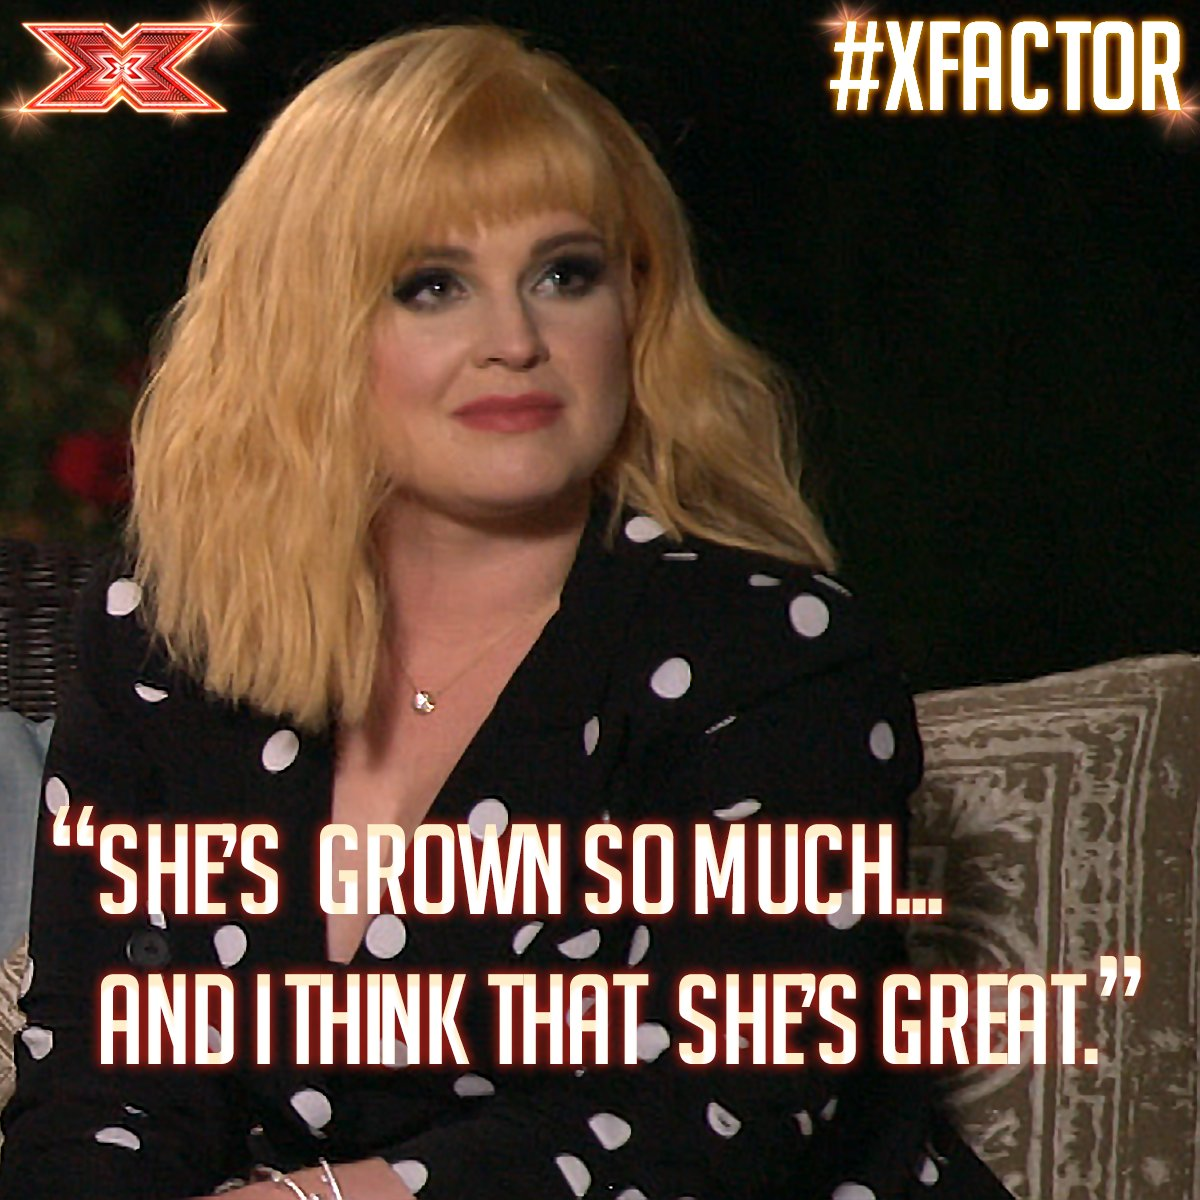 We thought GG nailed it and @KellyOsbourne agrees! 🎤⭐️ #XFactor #JudgesHouses https://t.co/CRKOzuo9BF